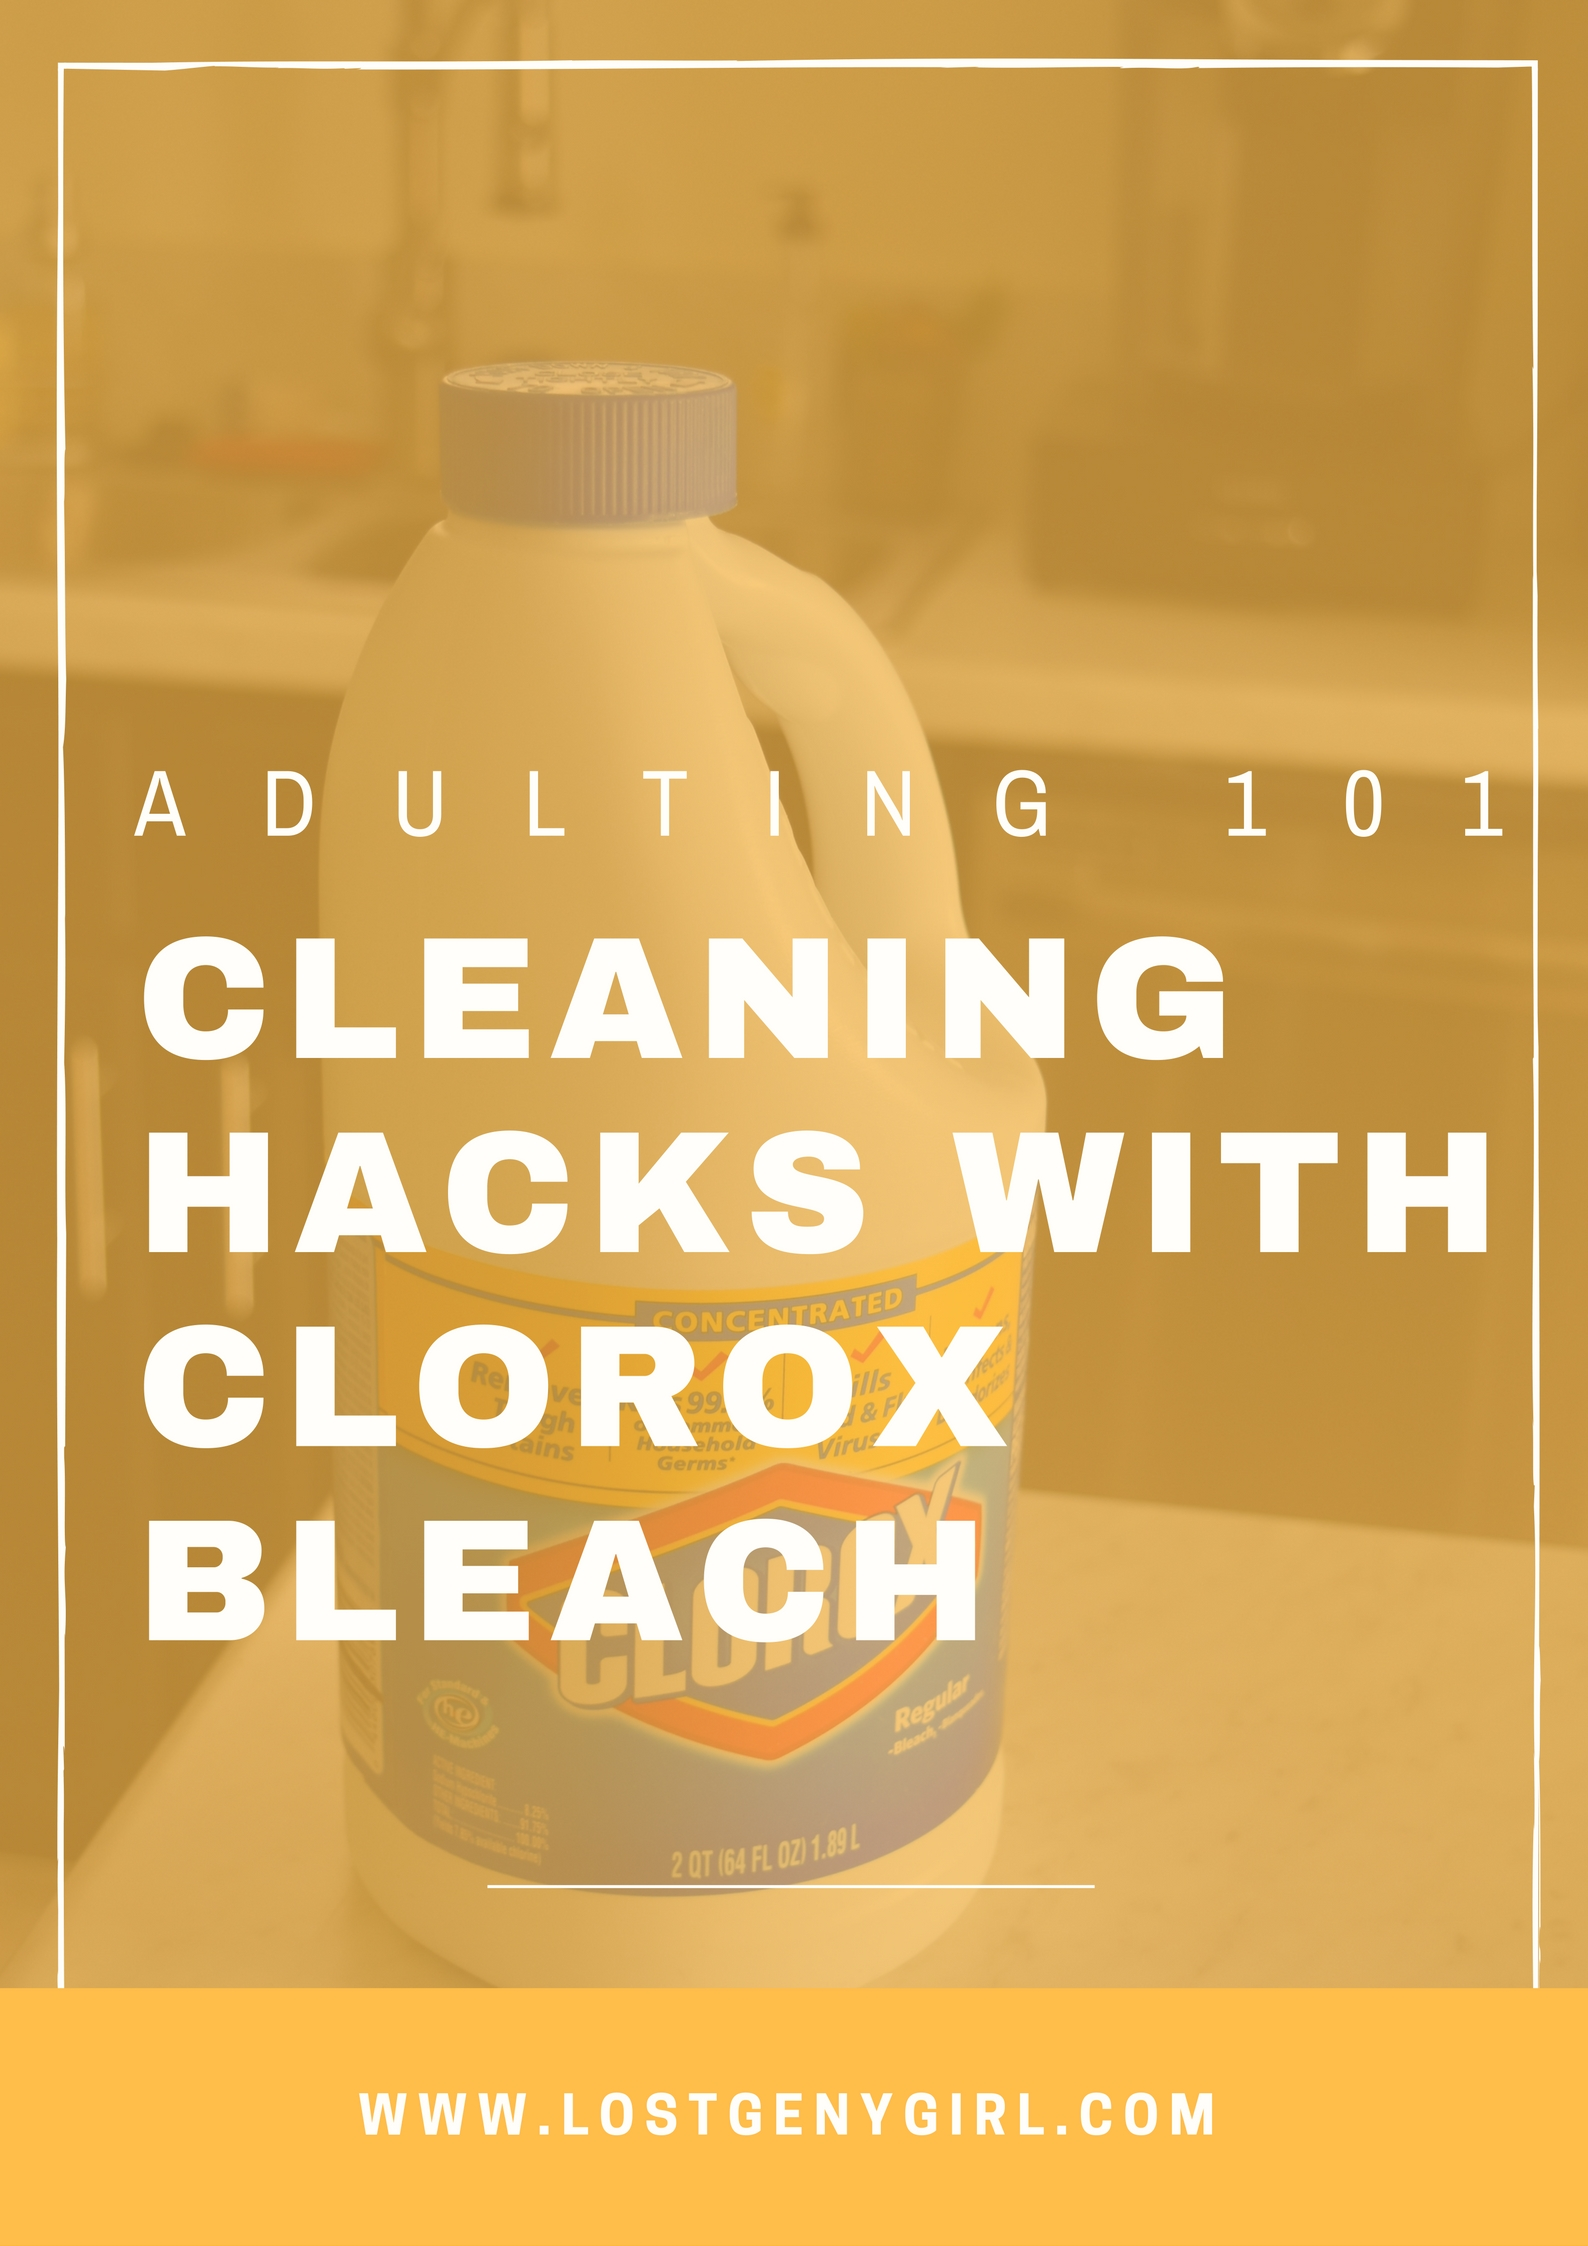 Adulting 101: Cleaning Hacks With Clorox Bleach